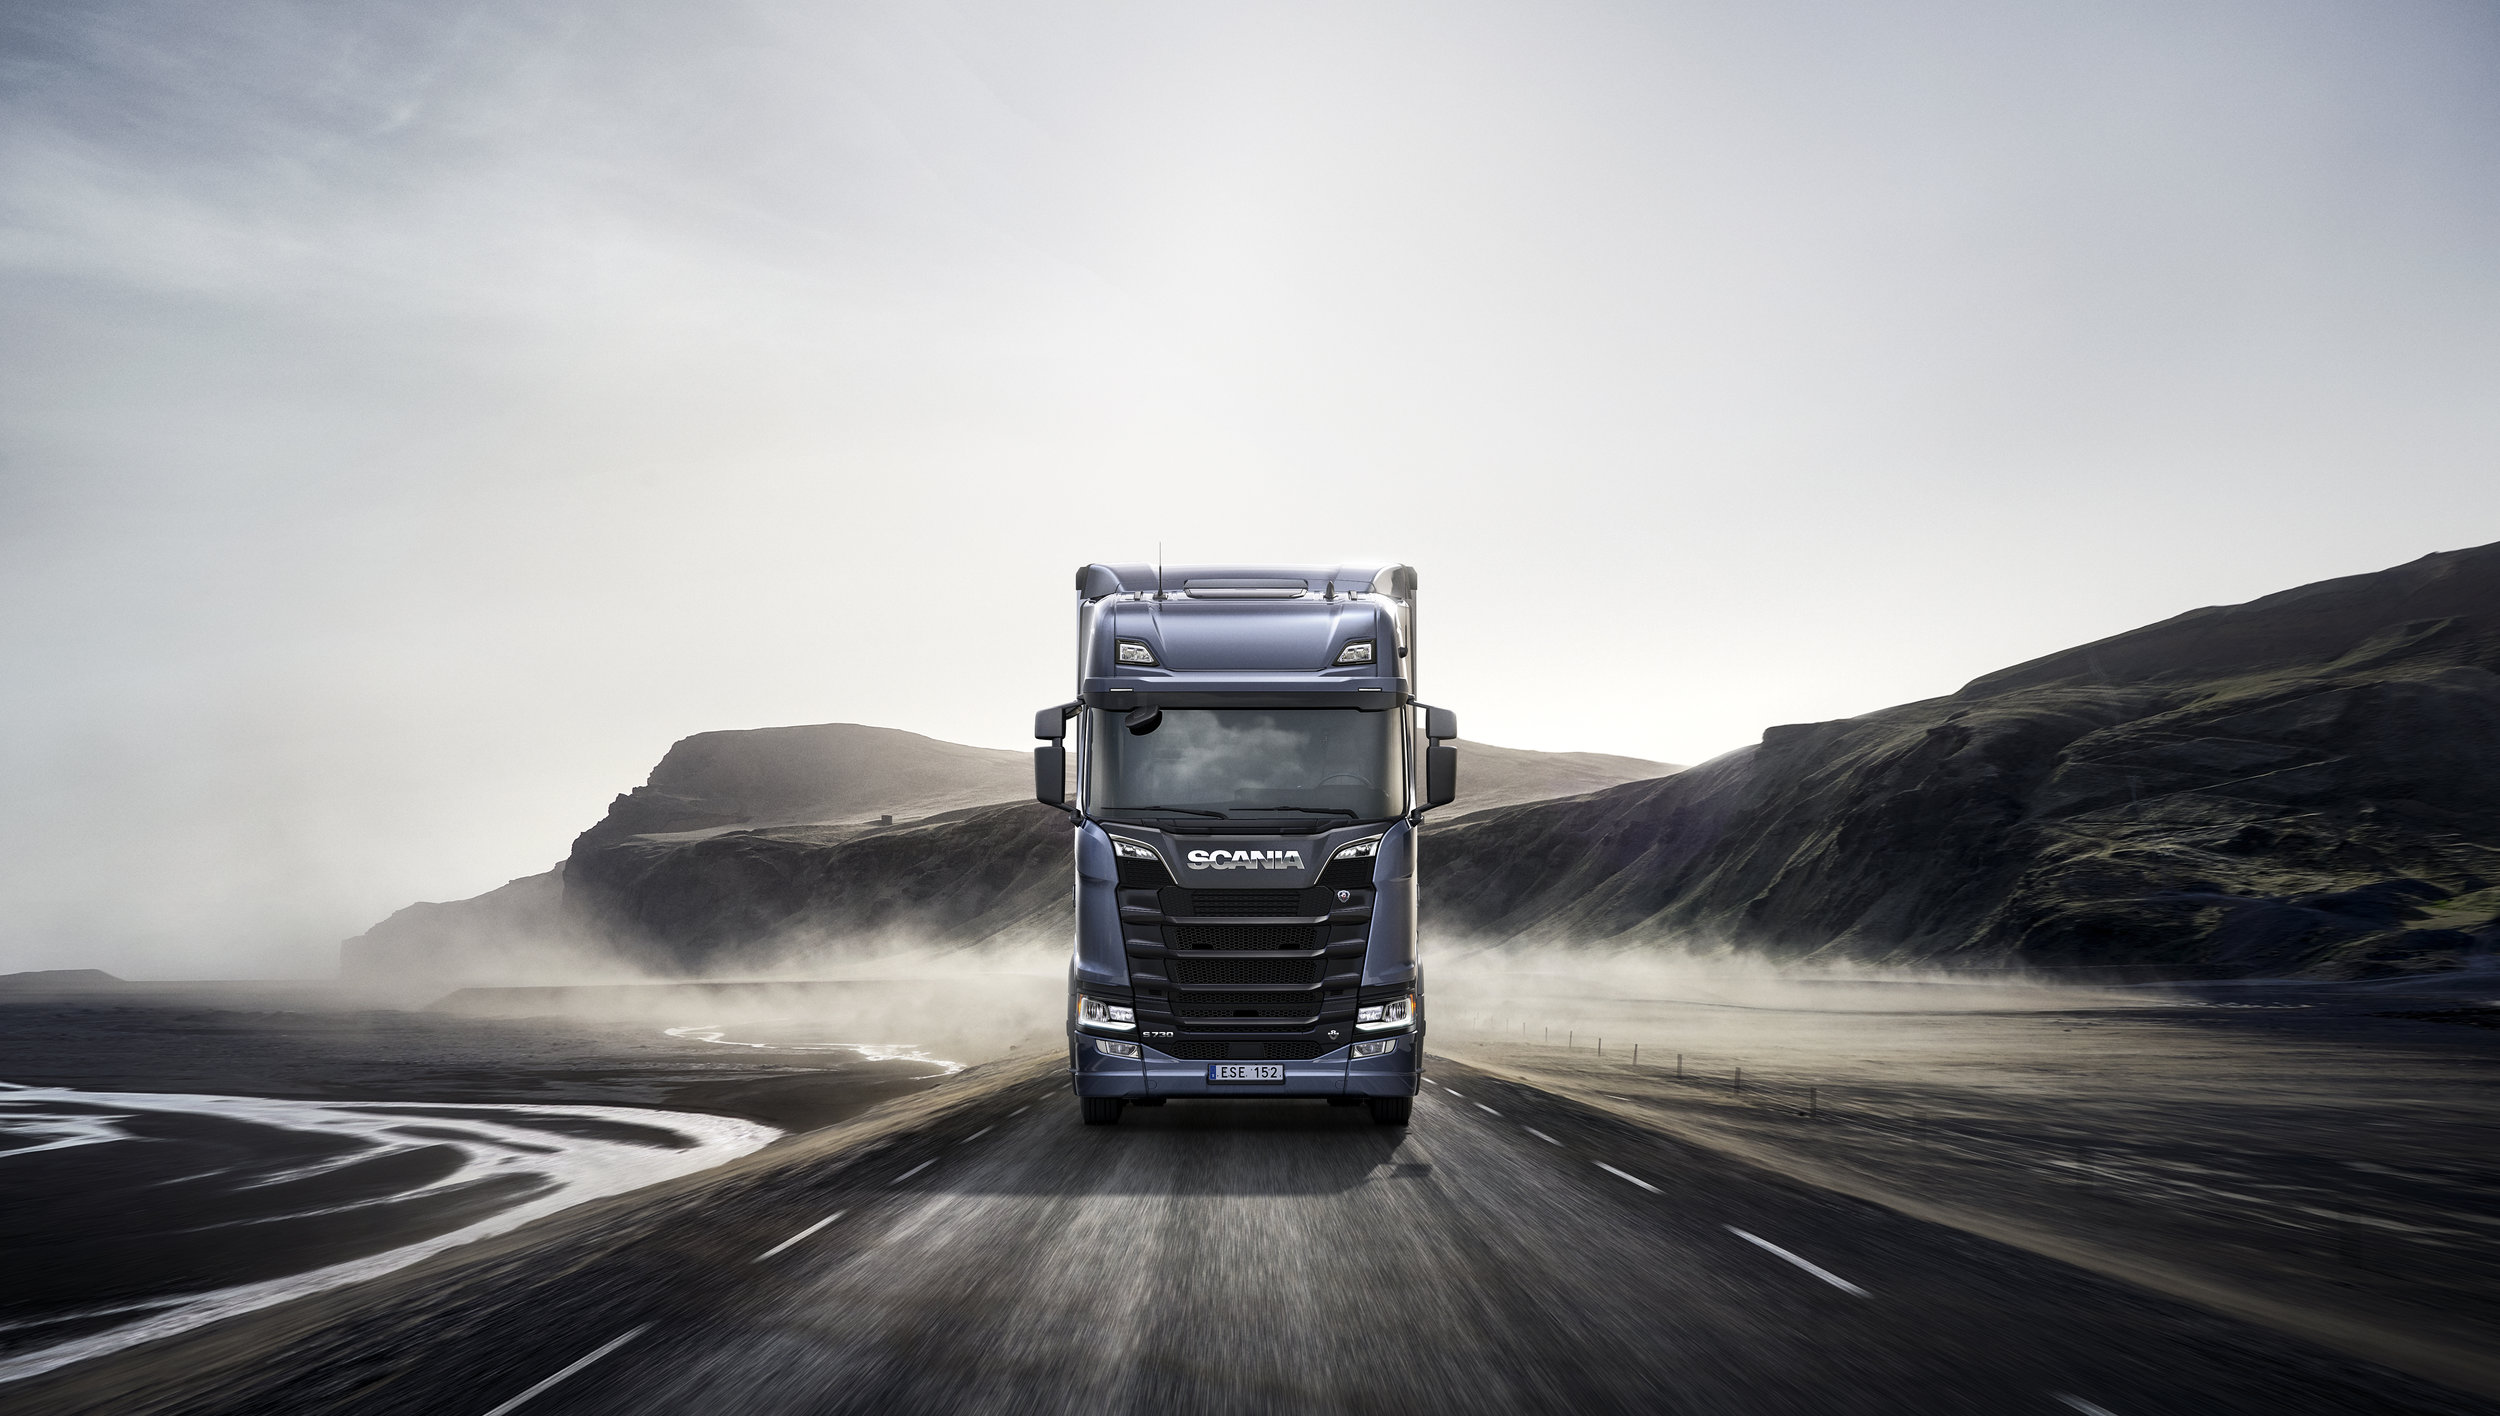 From Design to Marketing - Client: Scania